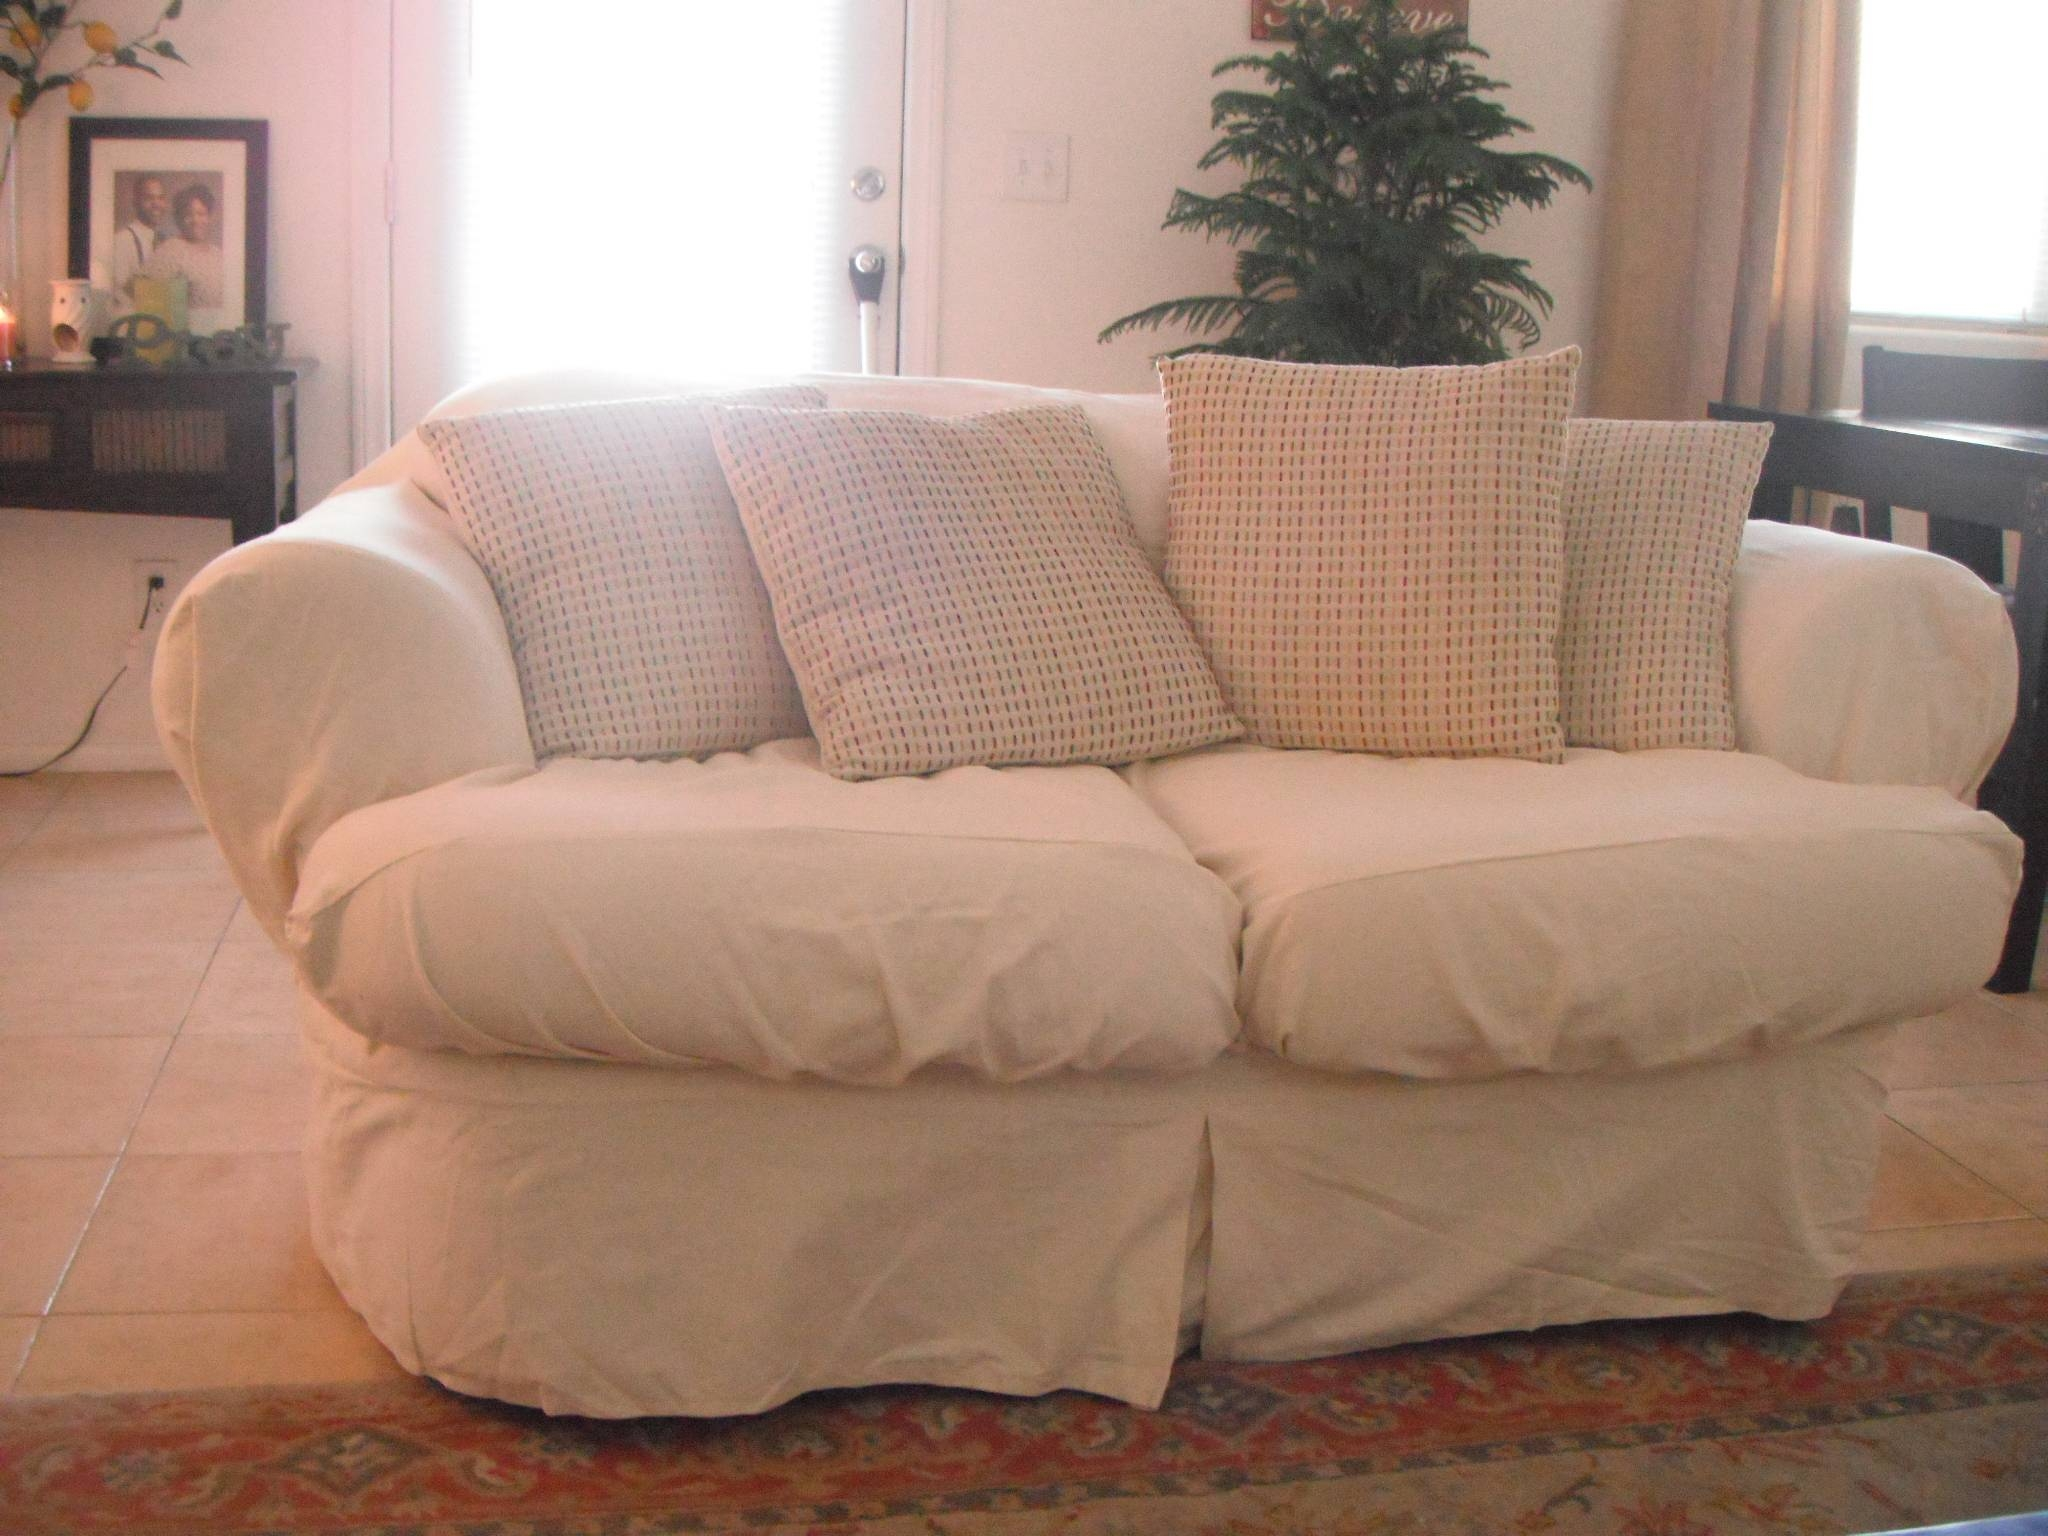 Furniture & Sofa: Stunning Sure Fit Sofa Covers Design For within Armless Couch Slipcovers (Image 7 of 15)